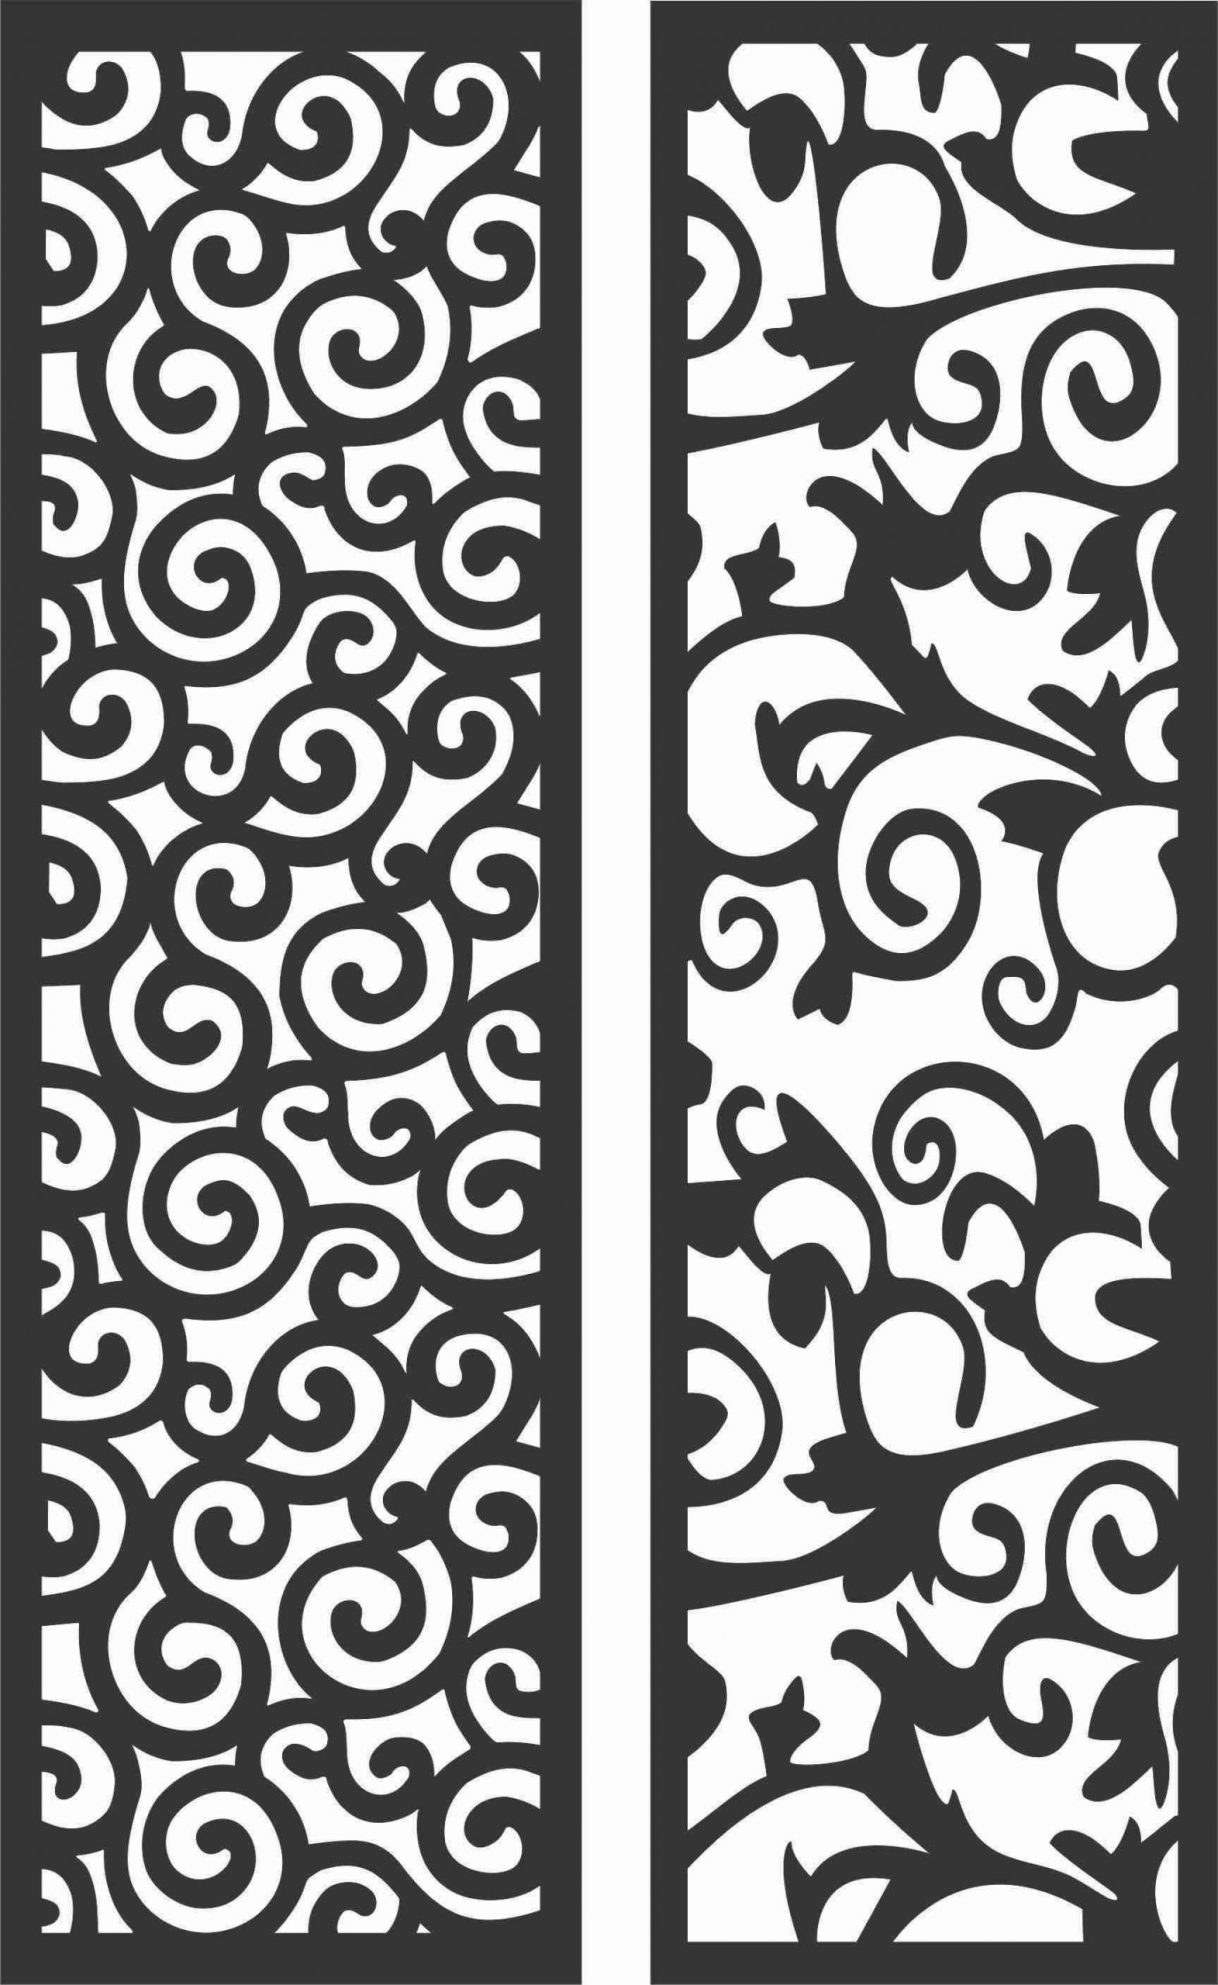 Decorative Screen Patterns For Laser Cutting 174 Free DXF File